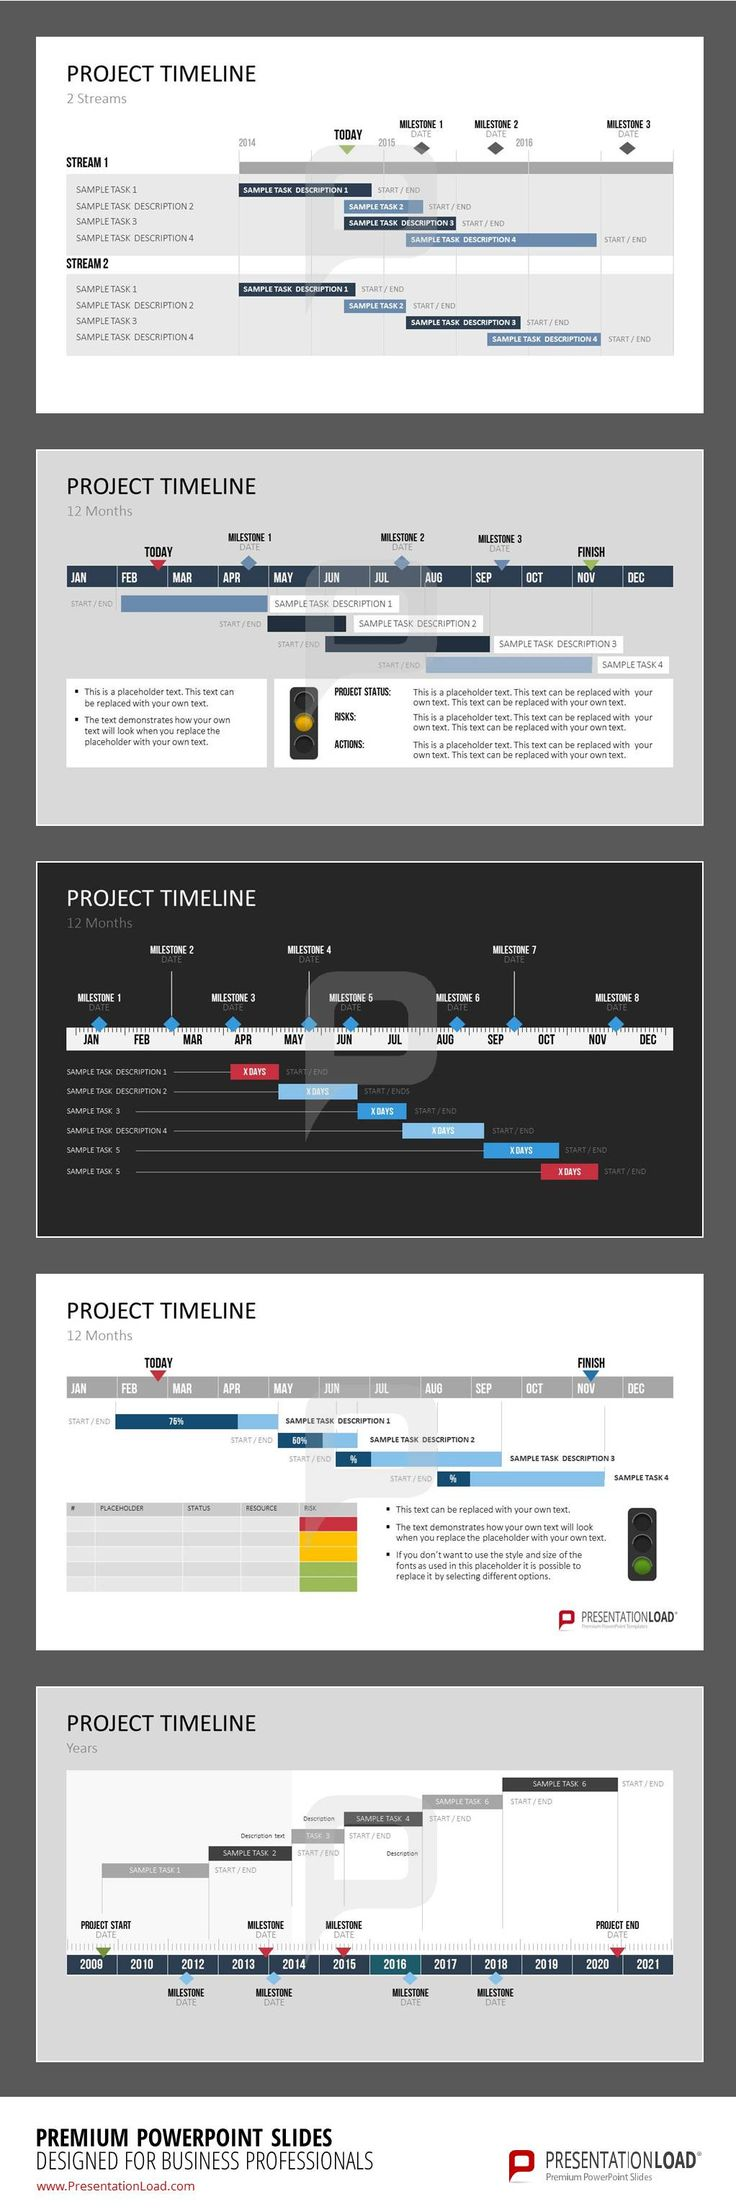 This set of templates offers a selection of individually designed Gantt Charts.